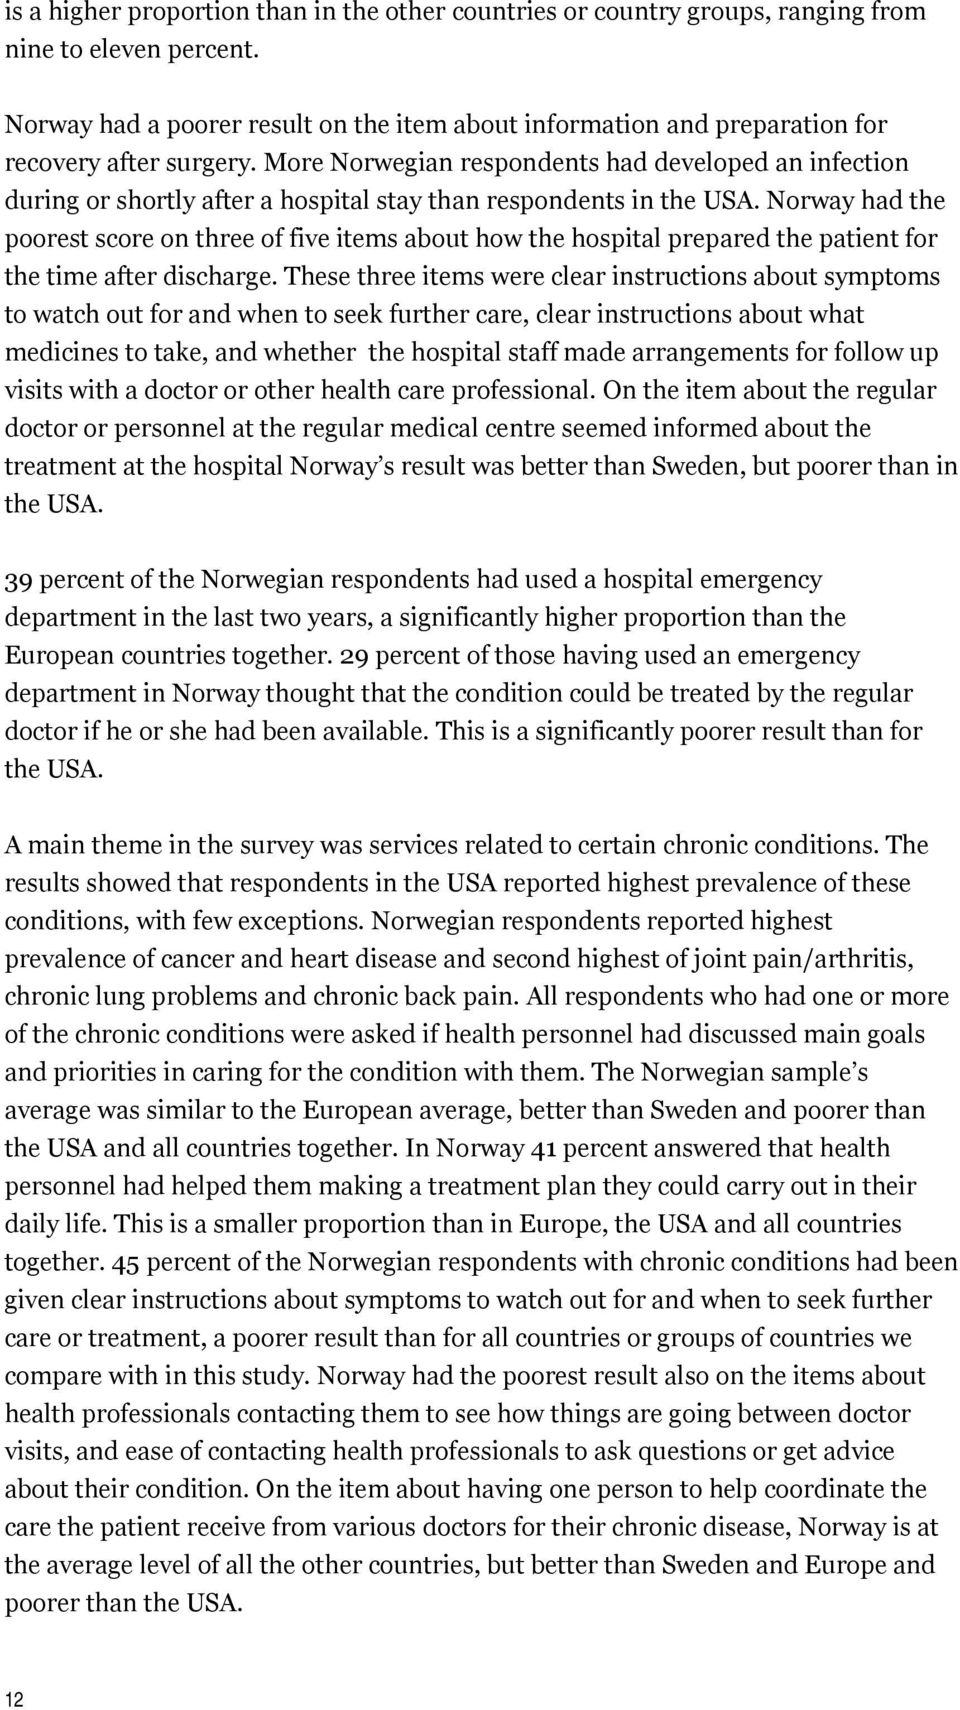 More Norwegian respondents had developed an infection during or shortly after a hospital stay than respondents in the USA.